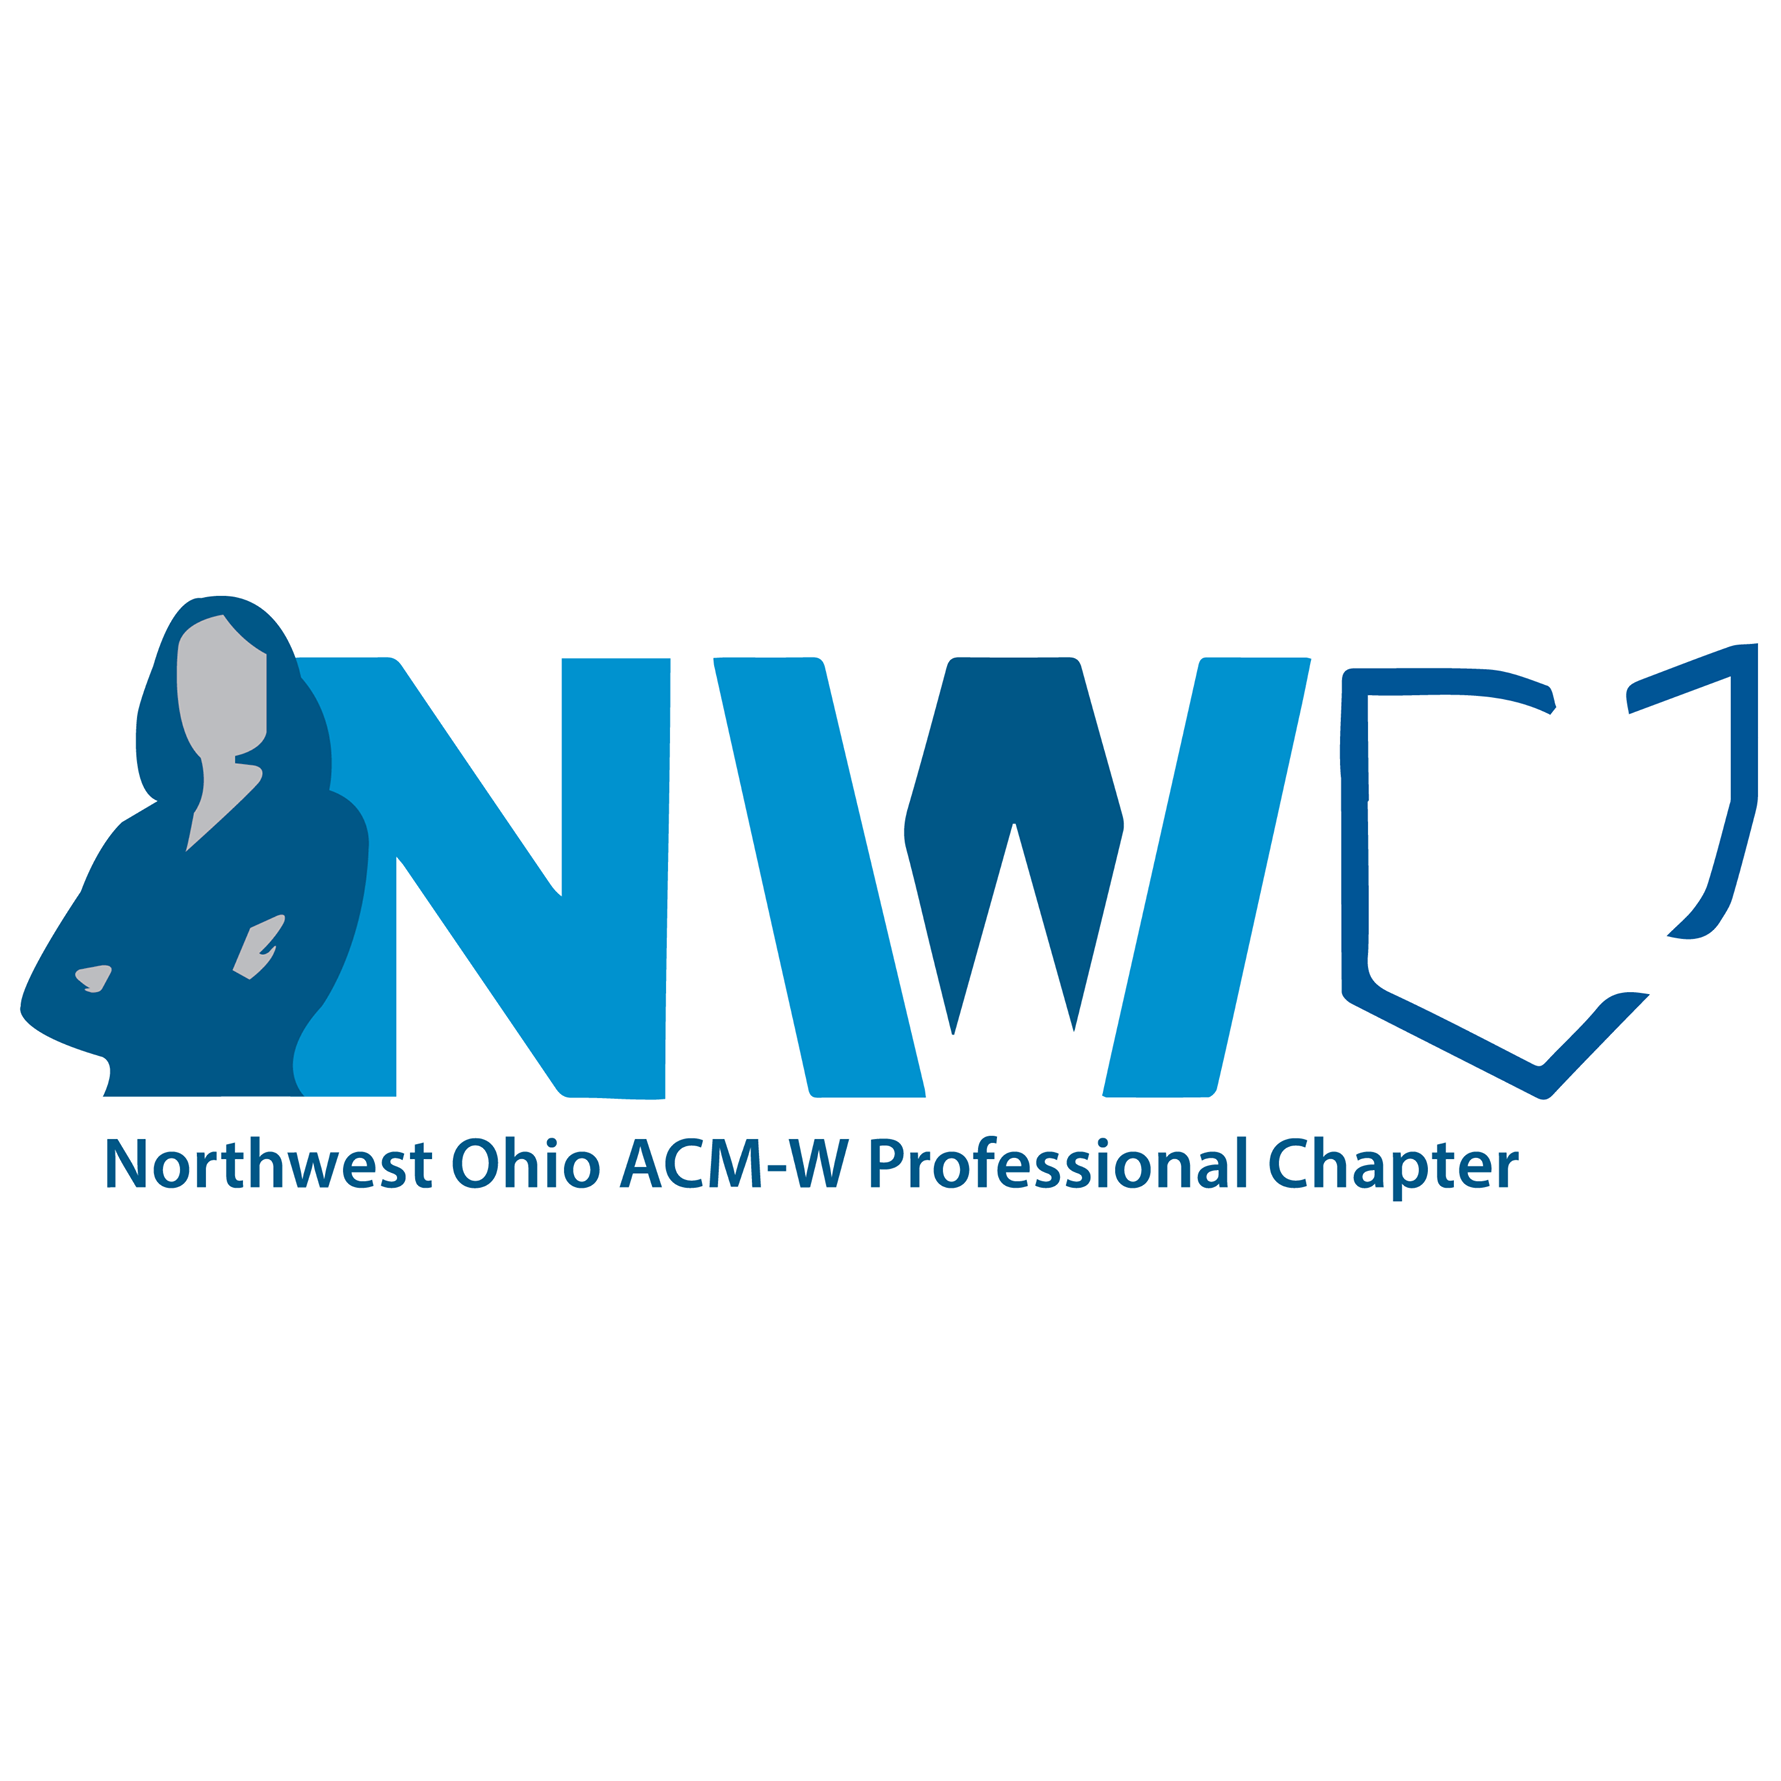 Northwest Ohio ACMW logo